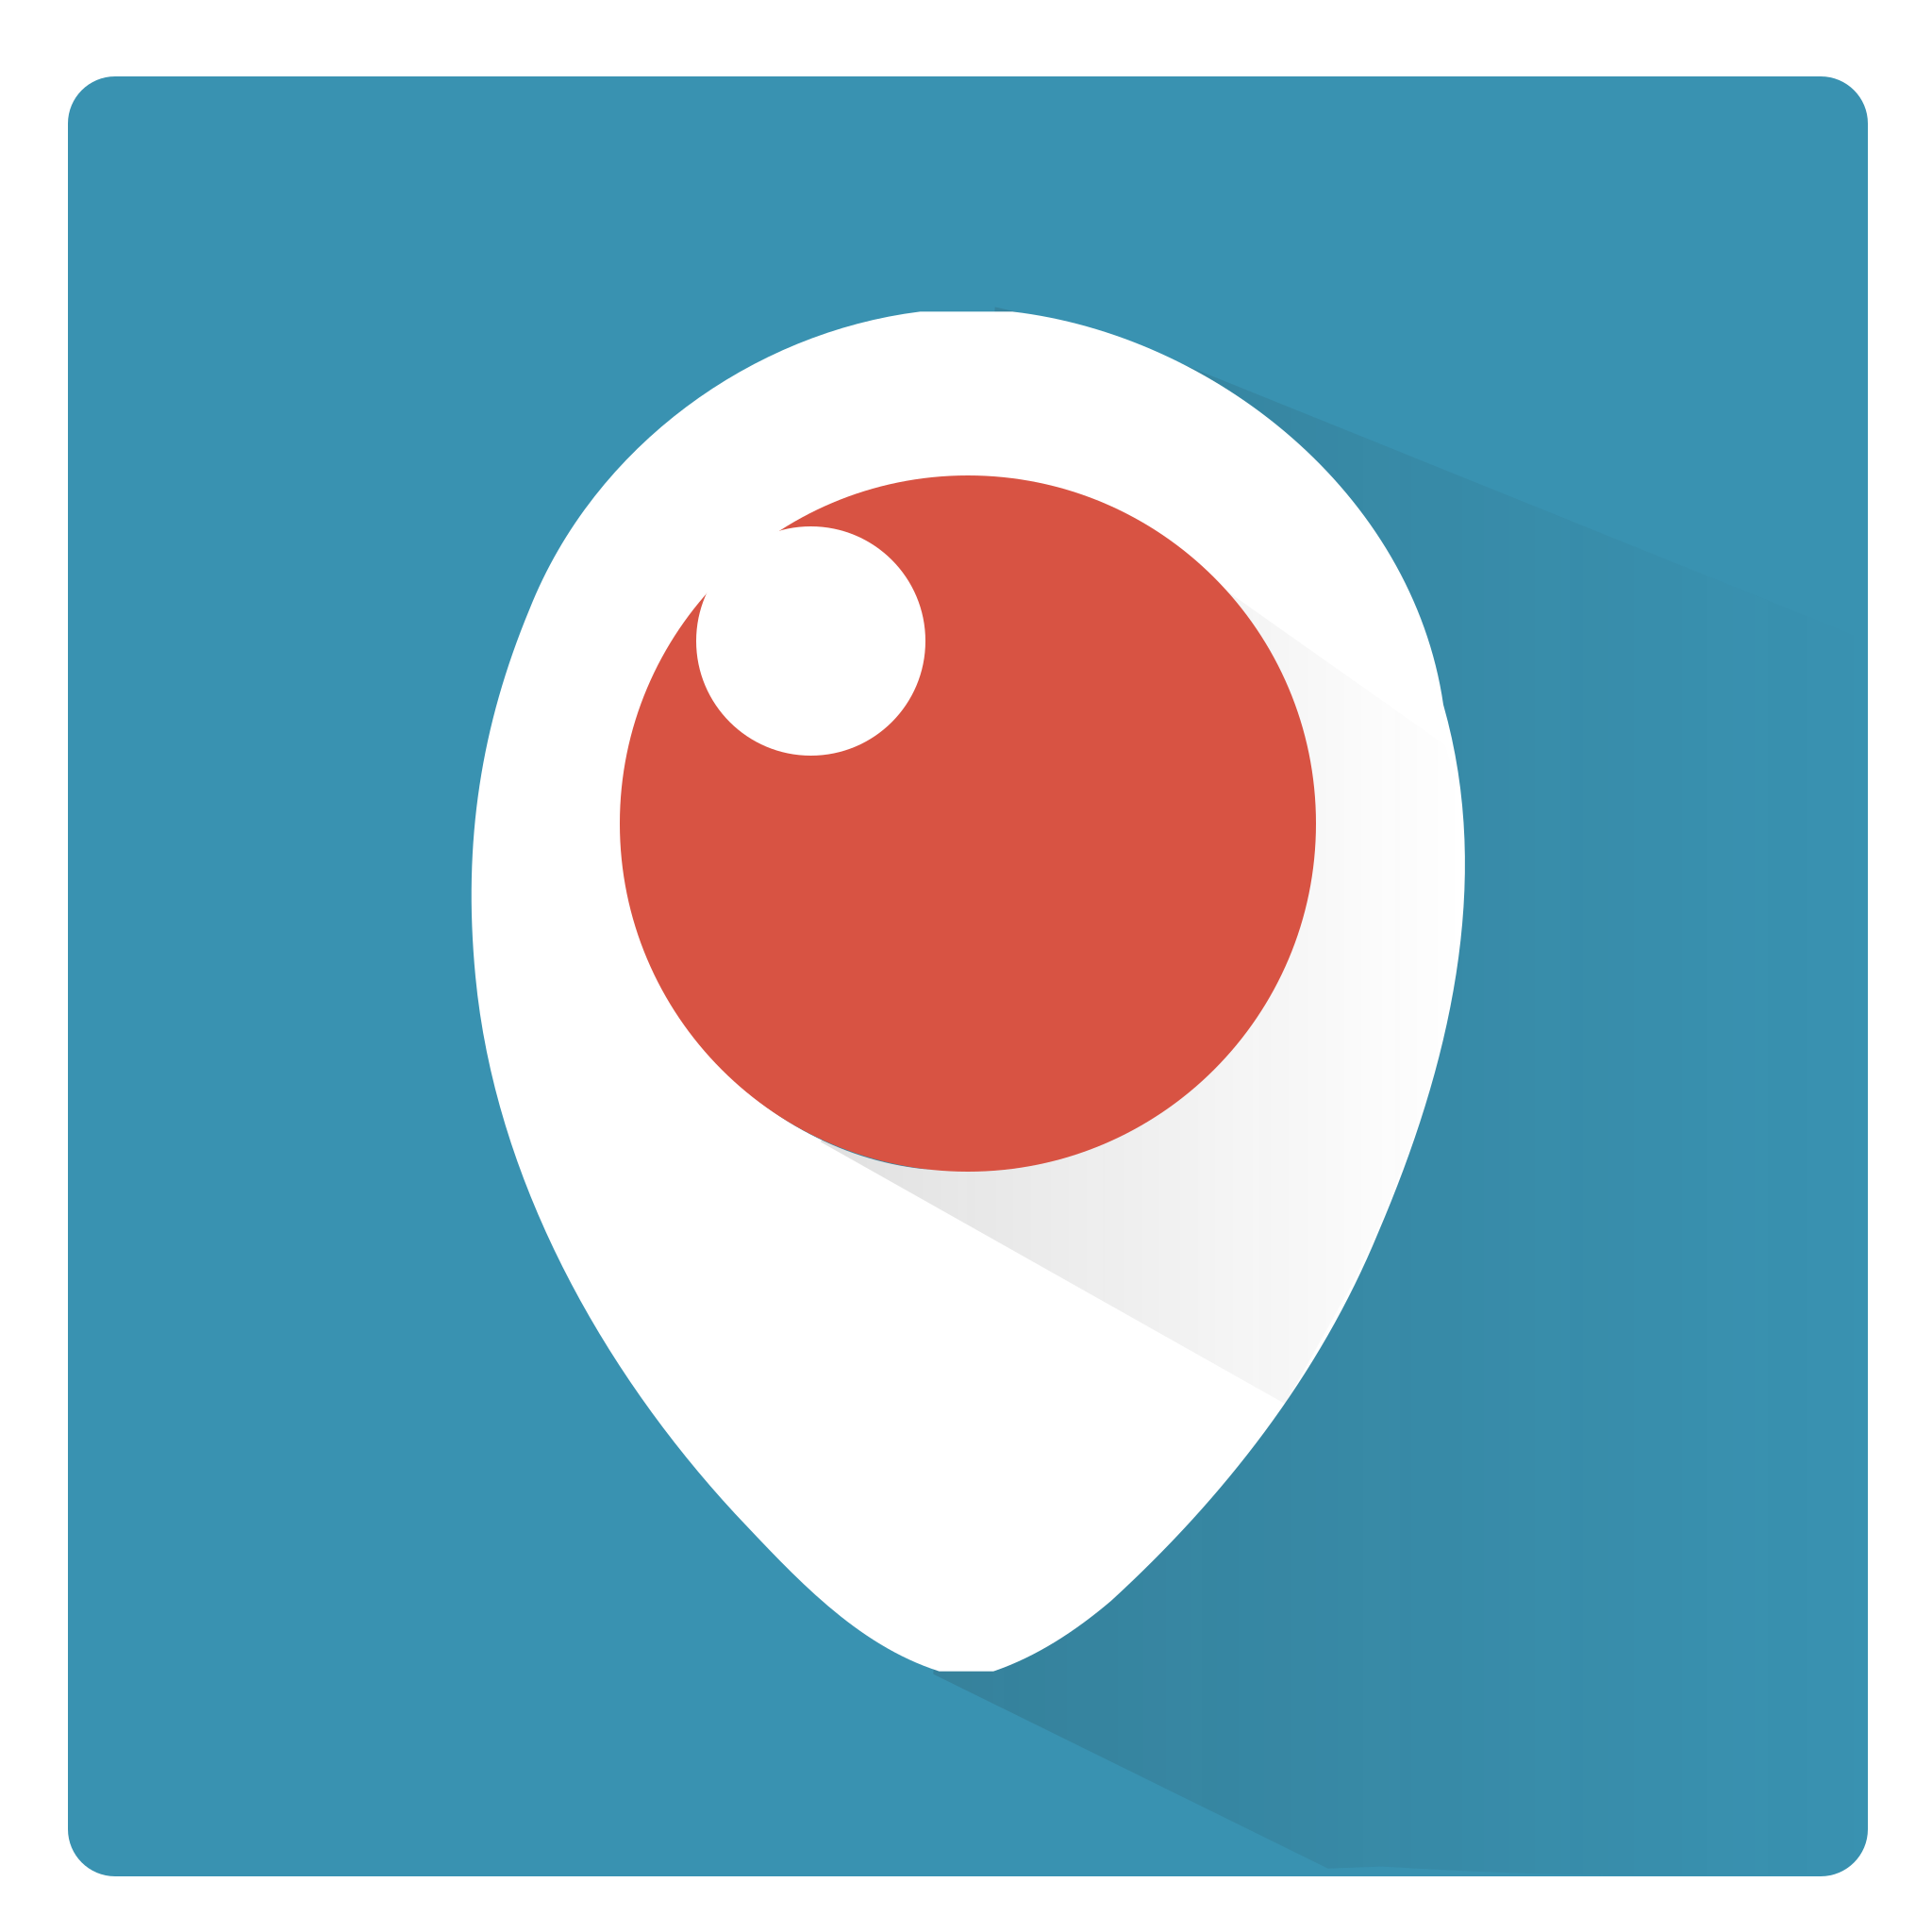 Vector Periscope Png Free Download #34351.